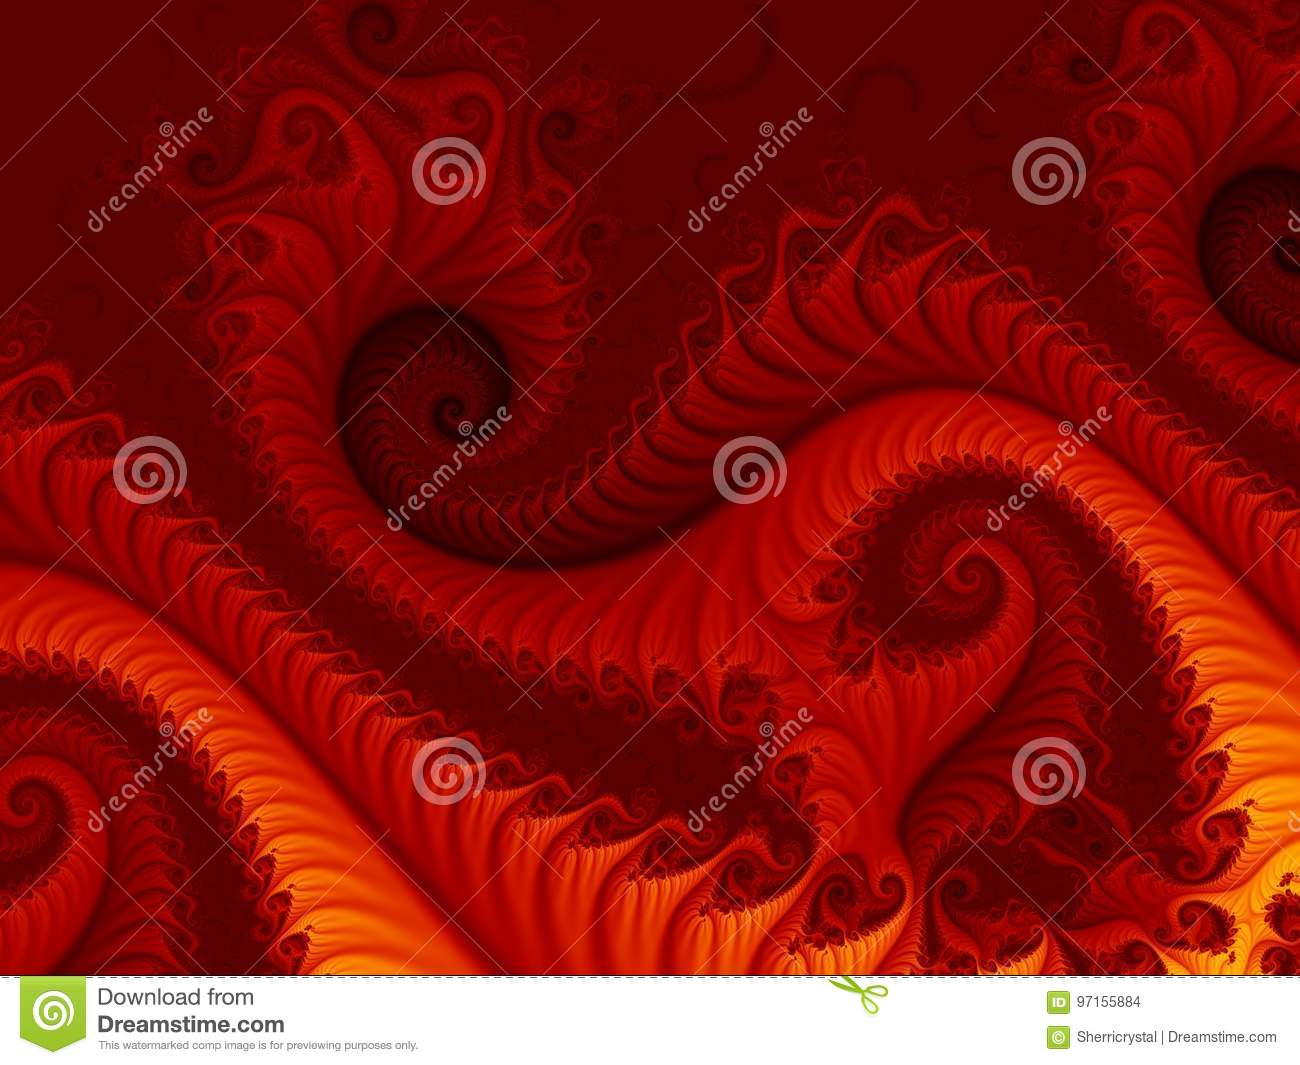 Fiery red abstract fractal background with swirling patterns, resembling a fire dragon